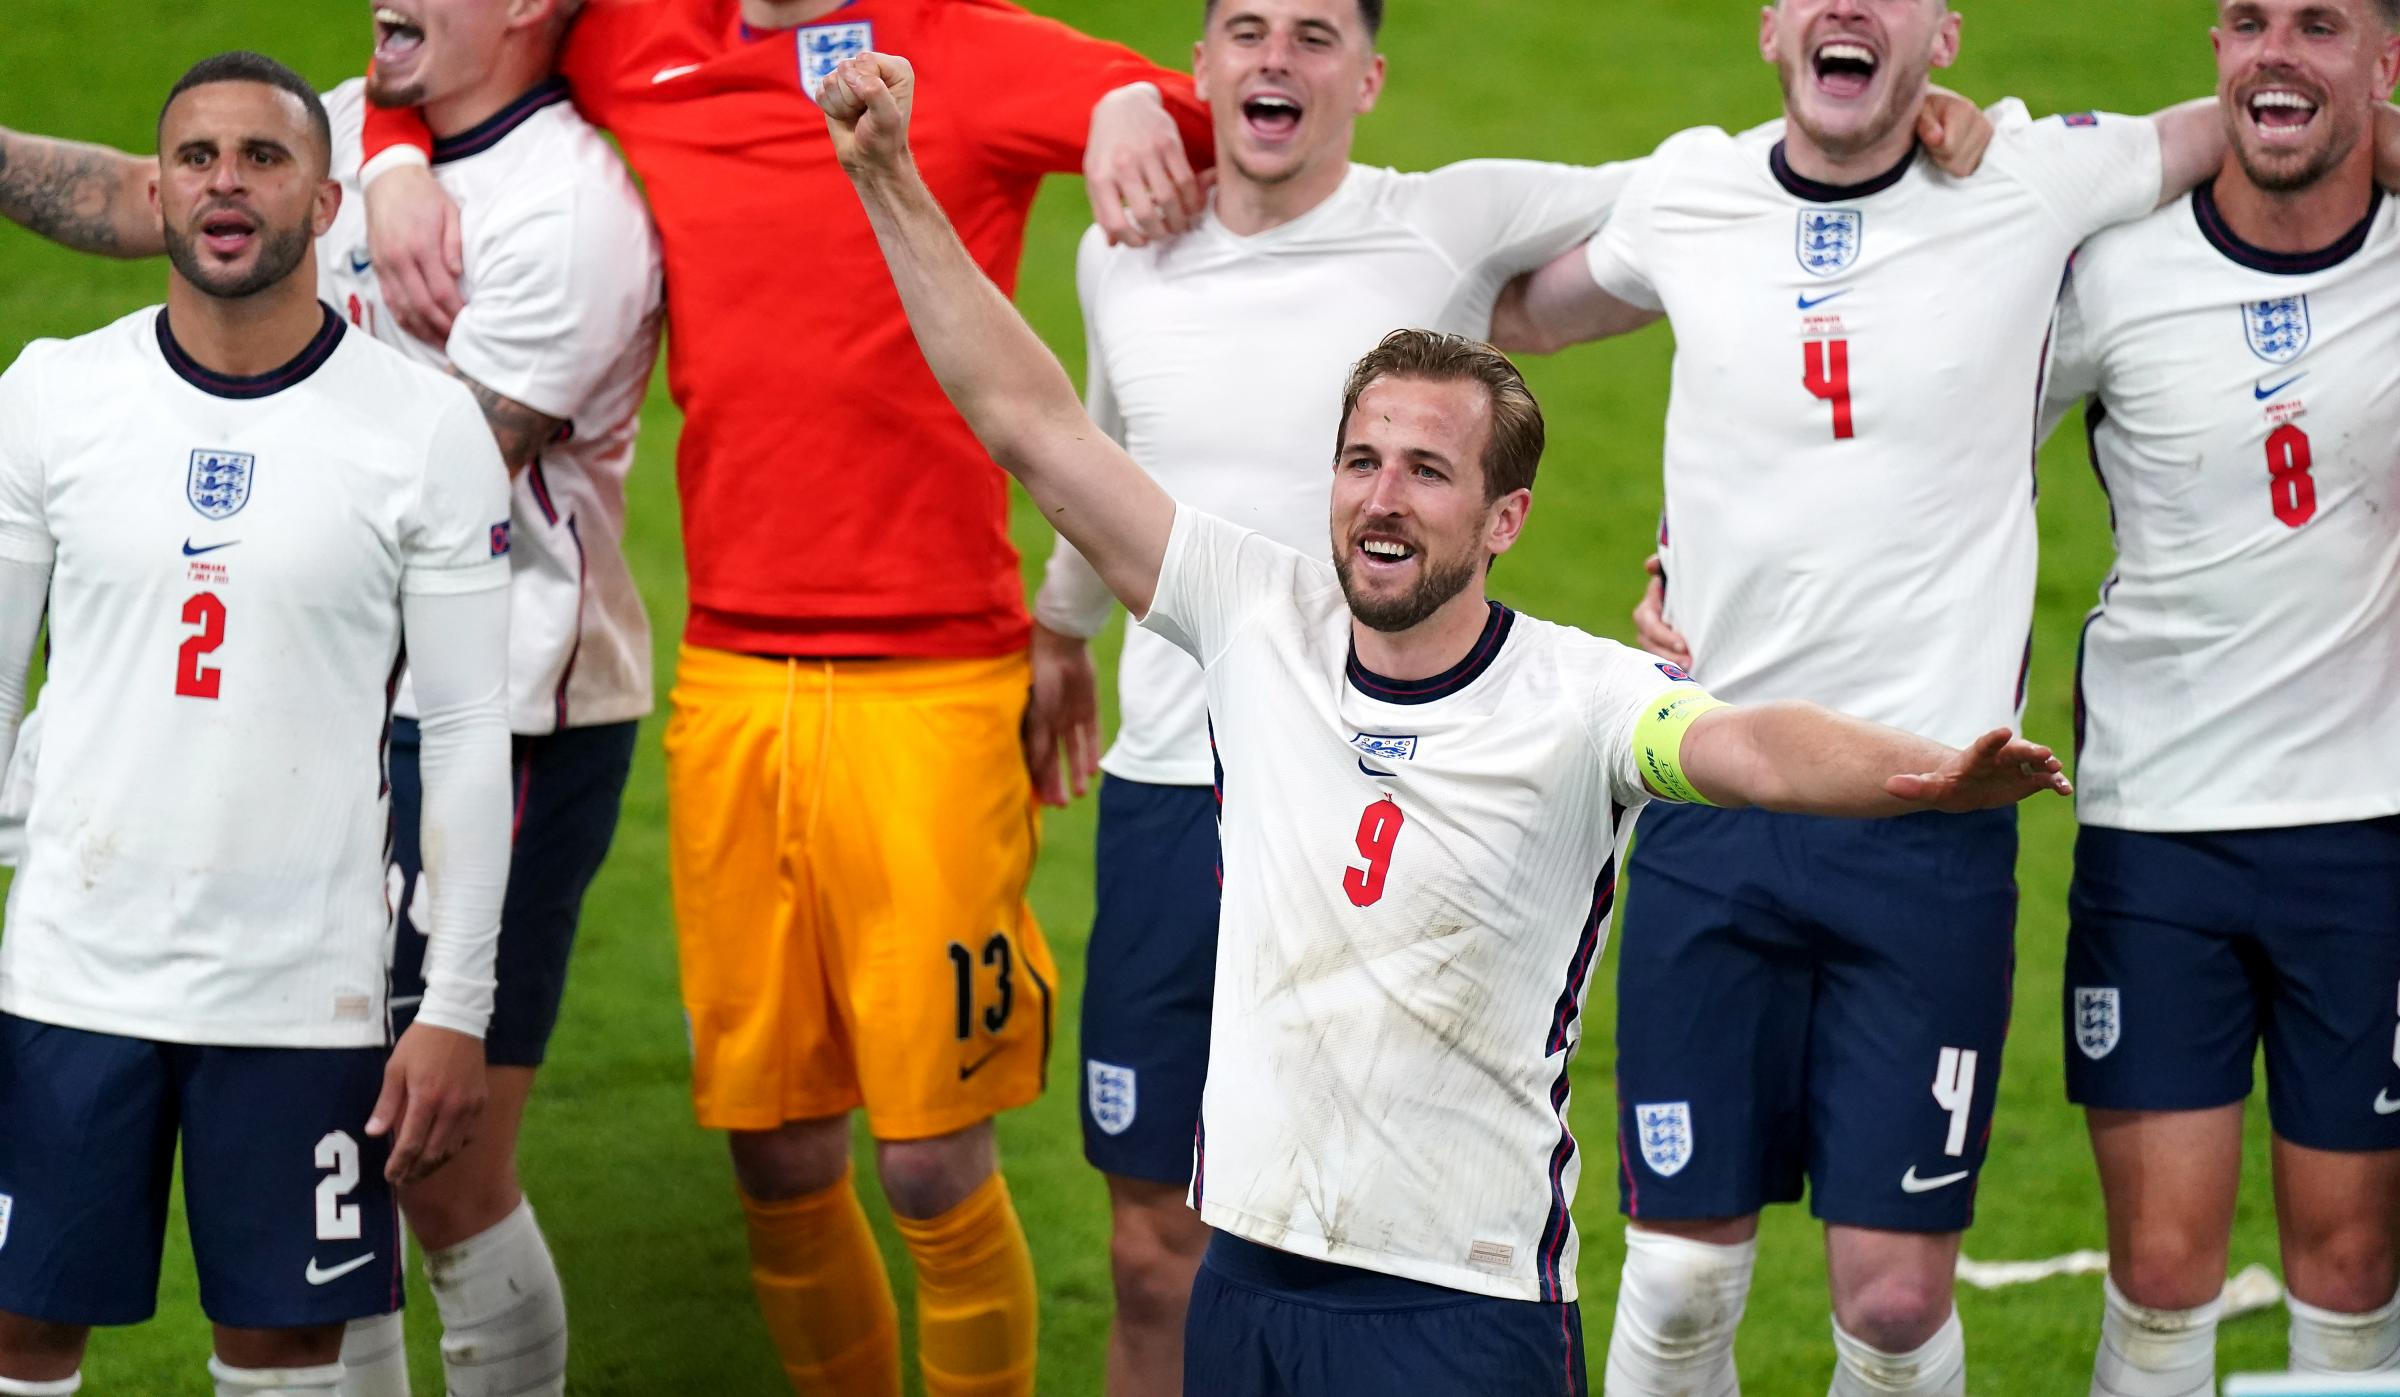 Scotland fans fume at Sam Matterface comms during England's Euro 2020 semi-final win: 'Worst moment in 18 months'